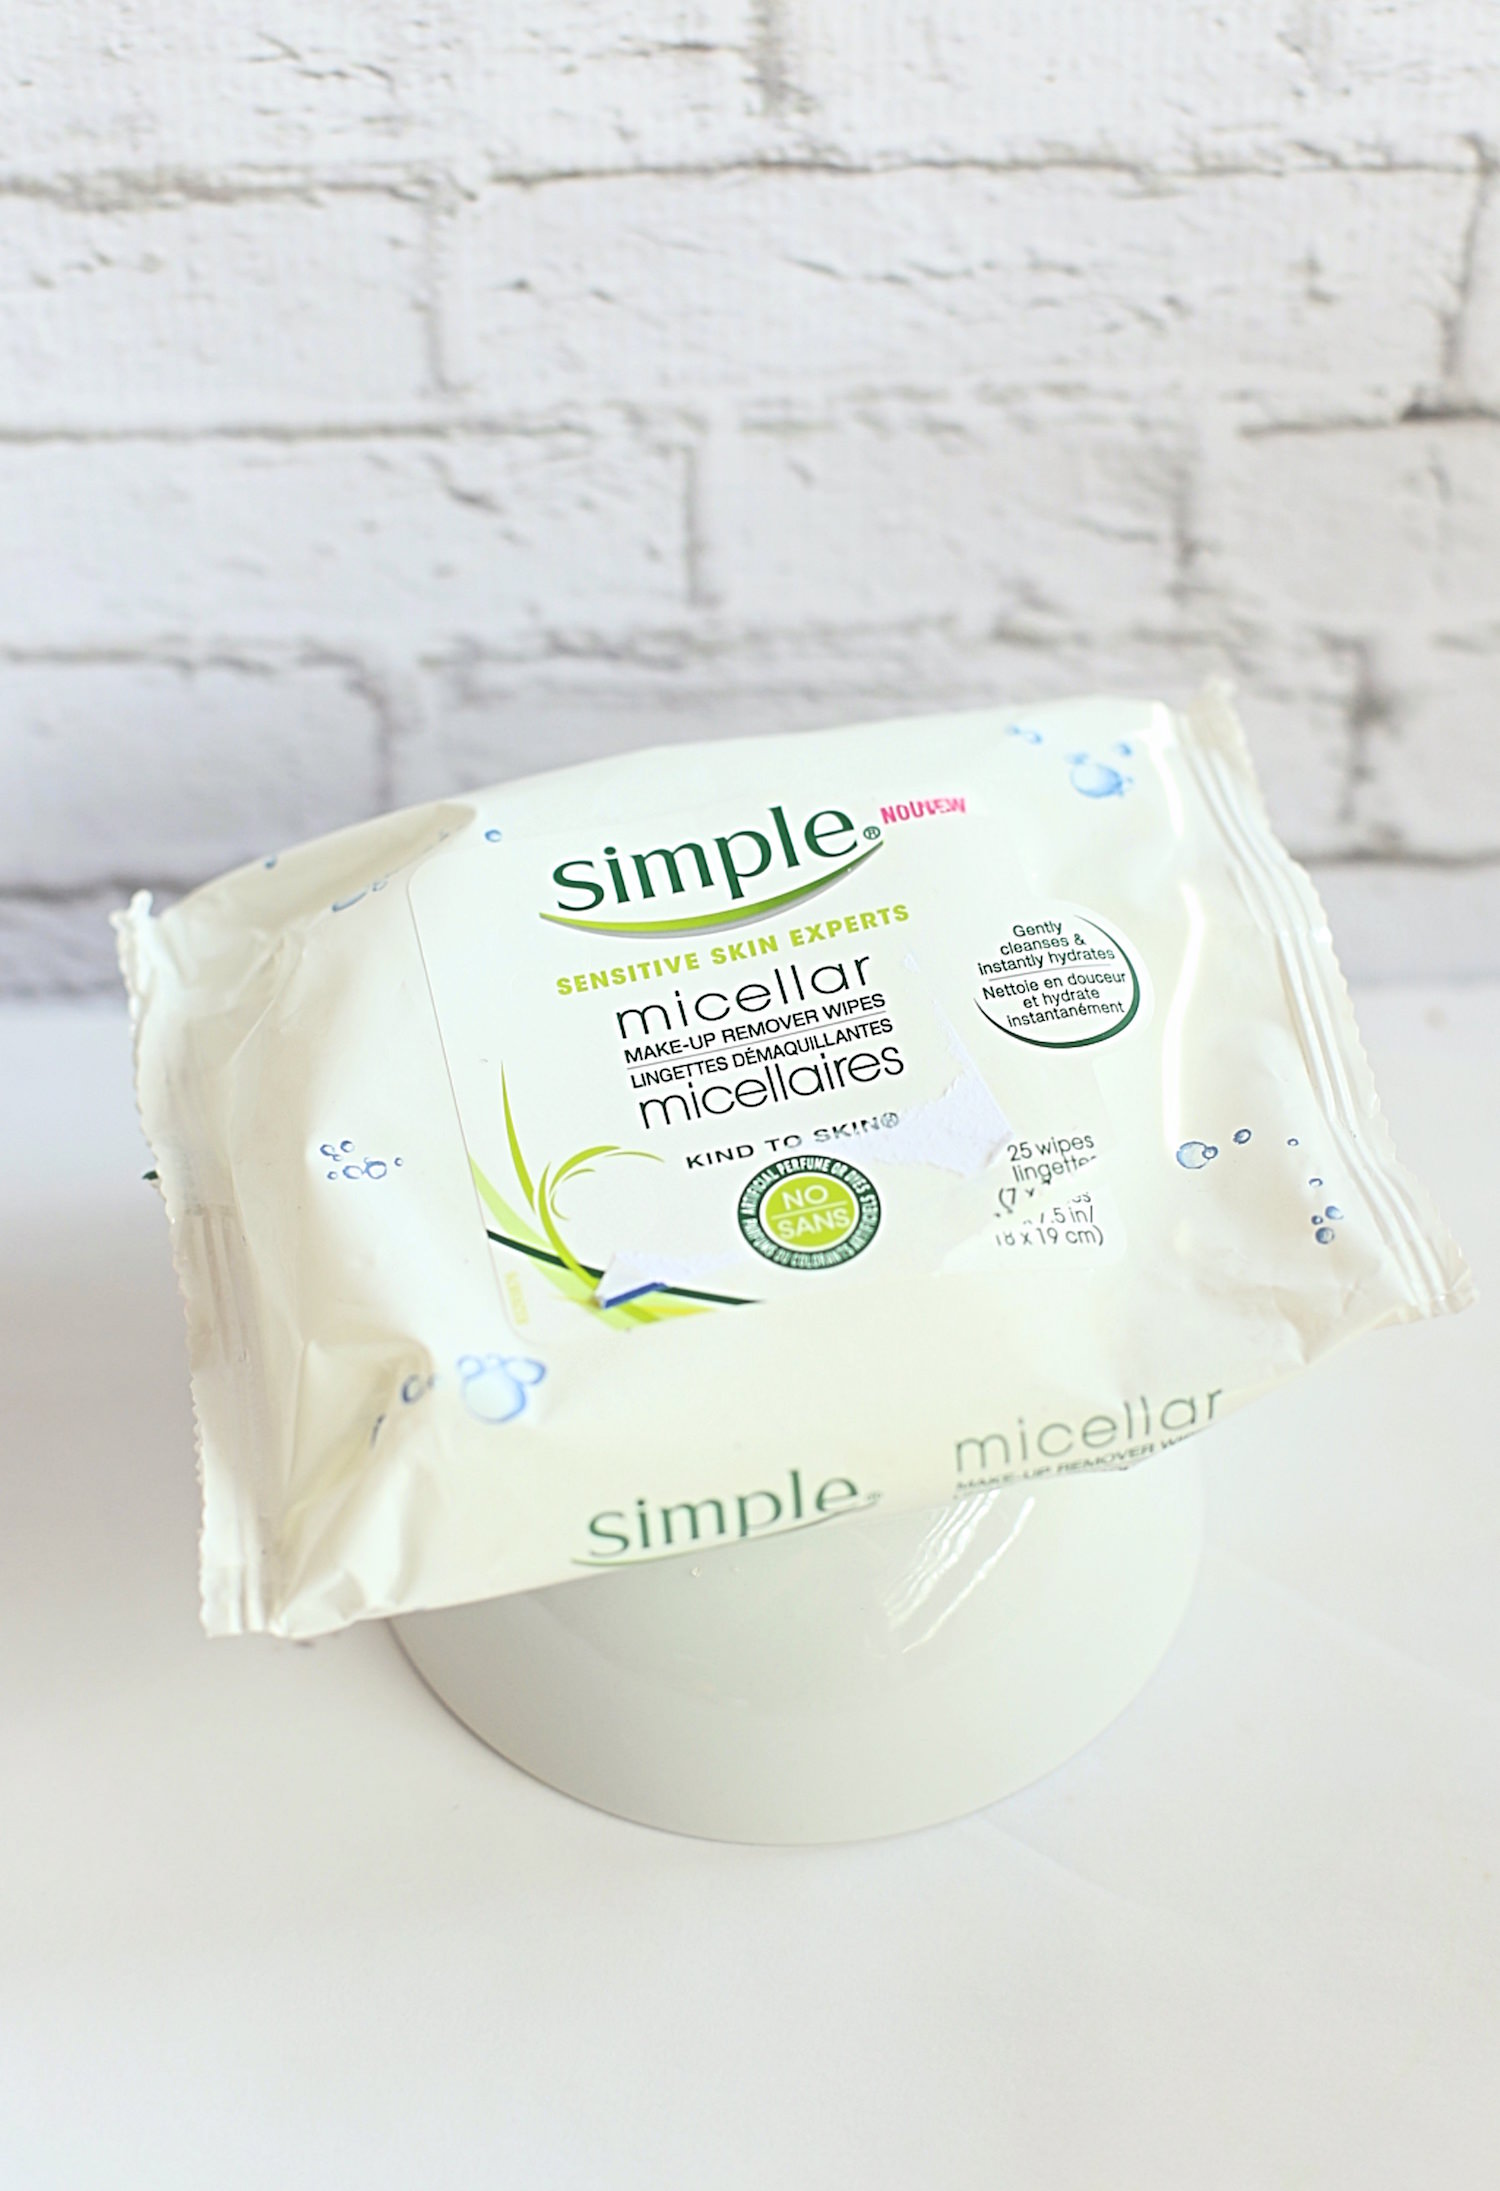 My Favorite Drugstore Makeup Products - Simple Cleansing Wipes | TrufflesandTrends.com